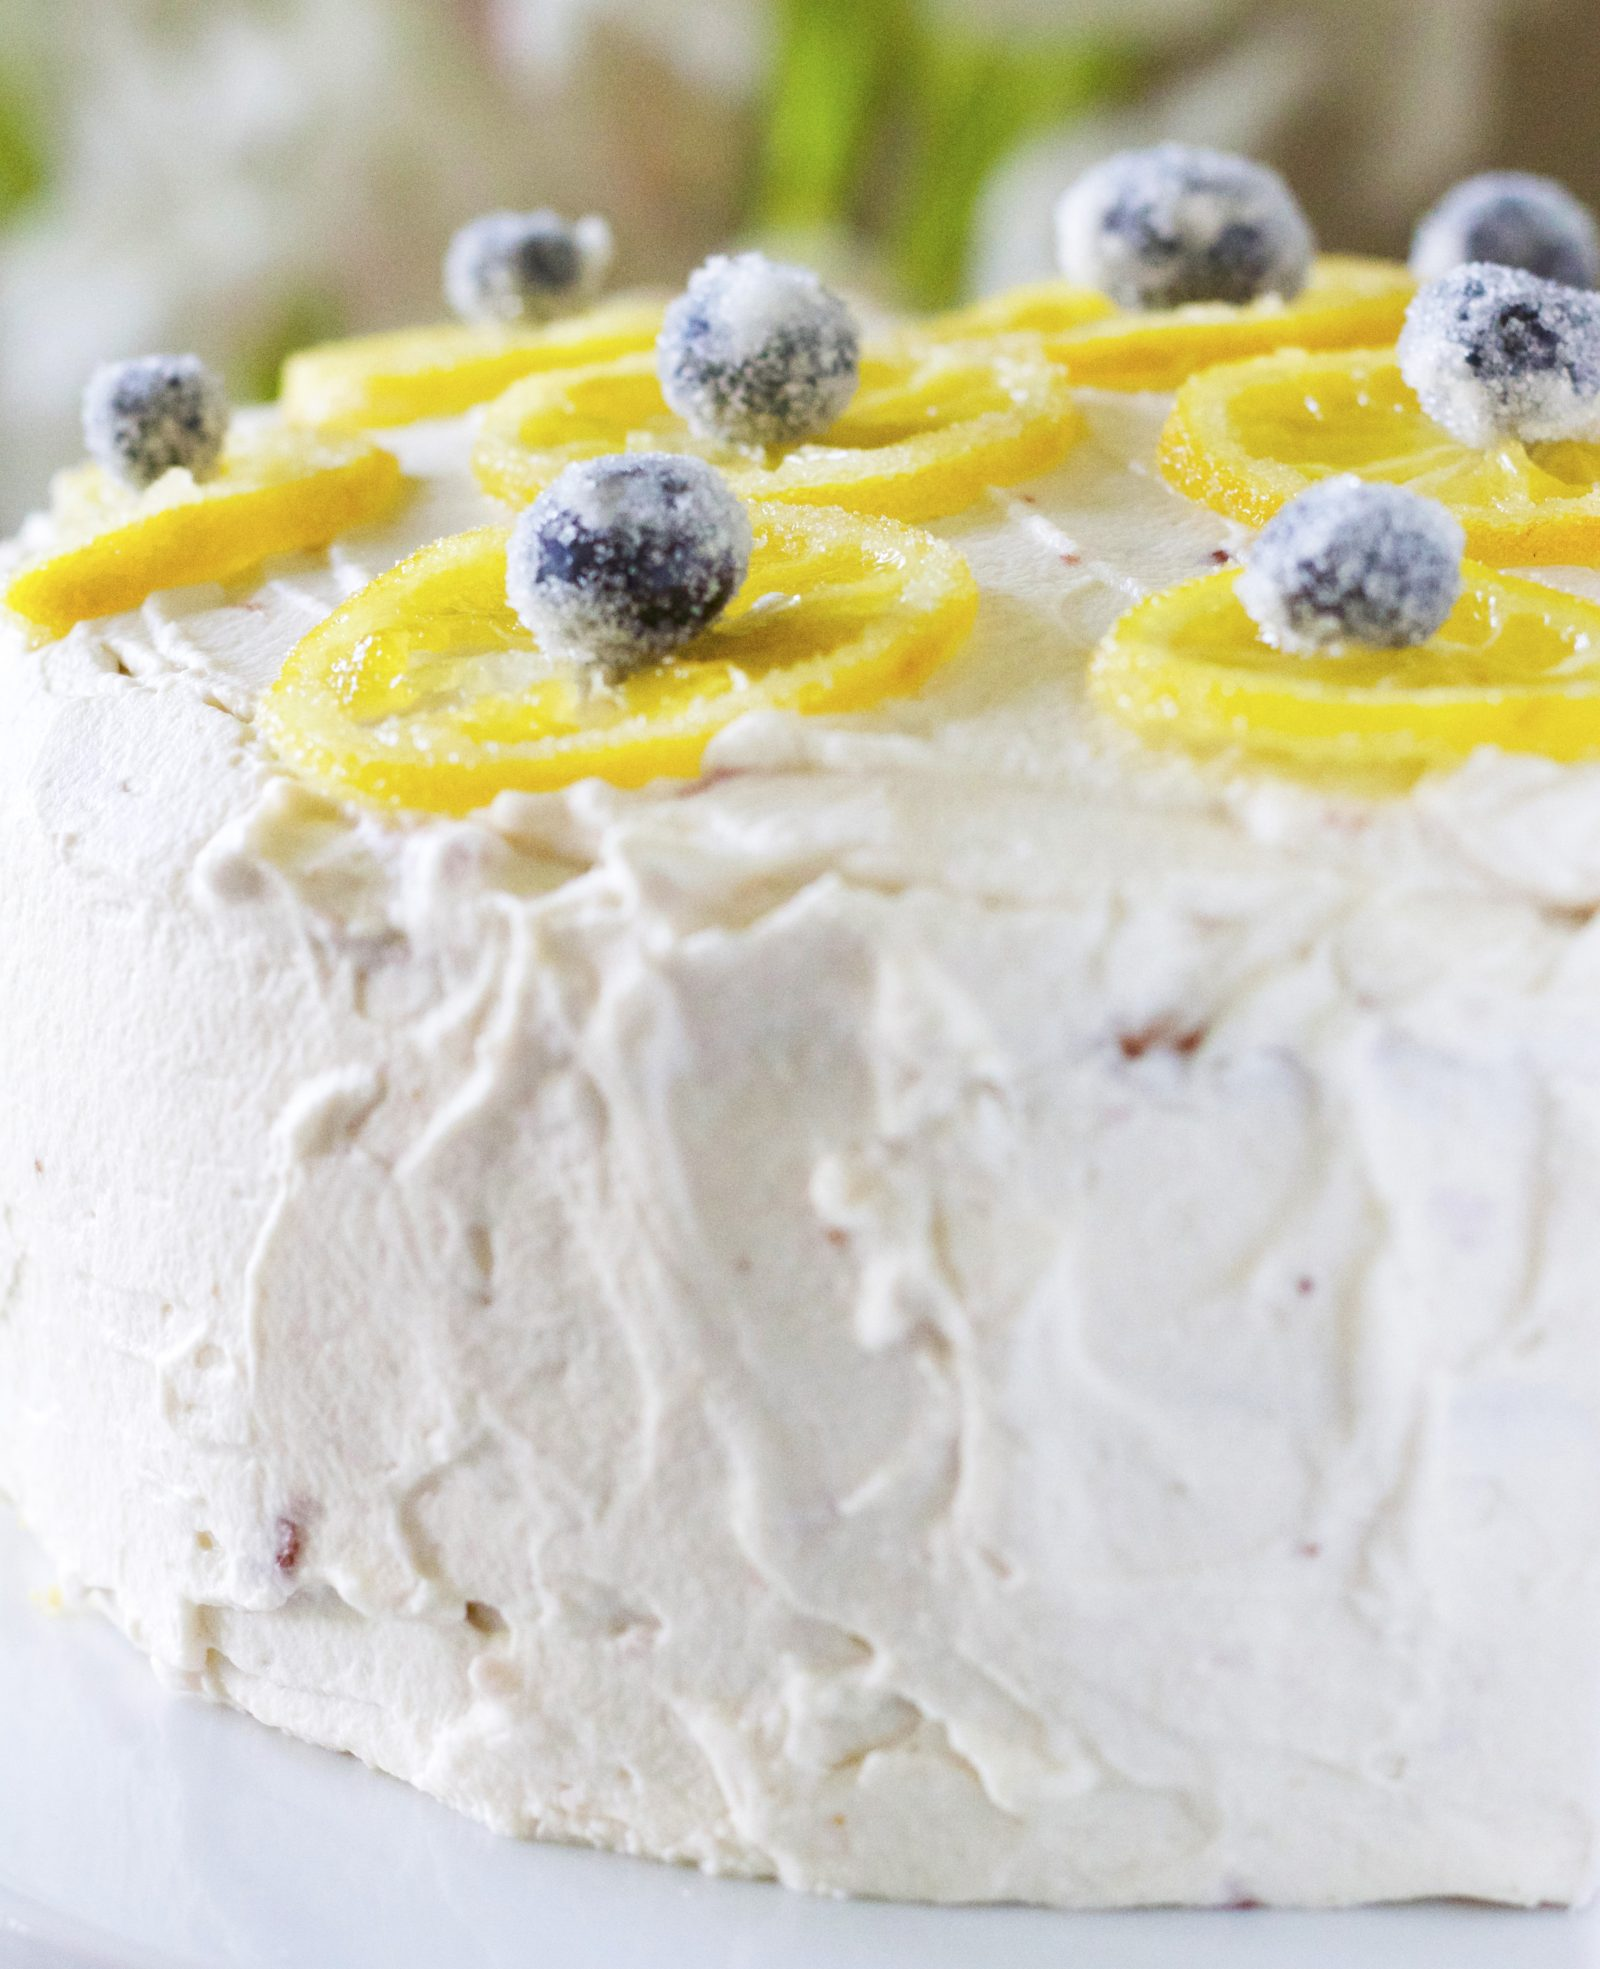 Lemon Blueberry Cake with Strawberry Whipped Cream Frosting www.Embellishmints.com